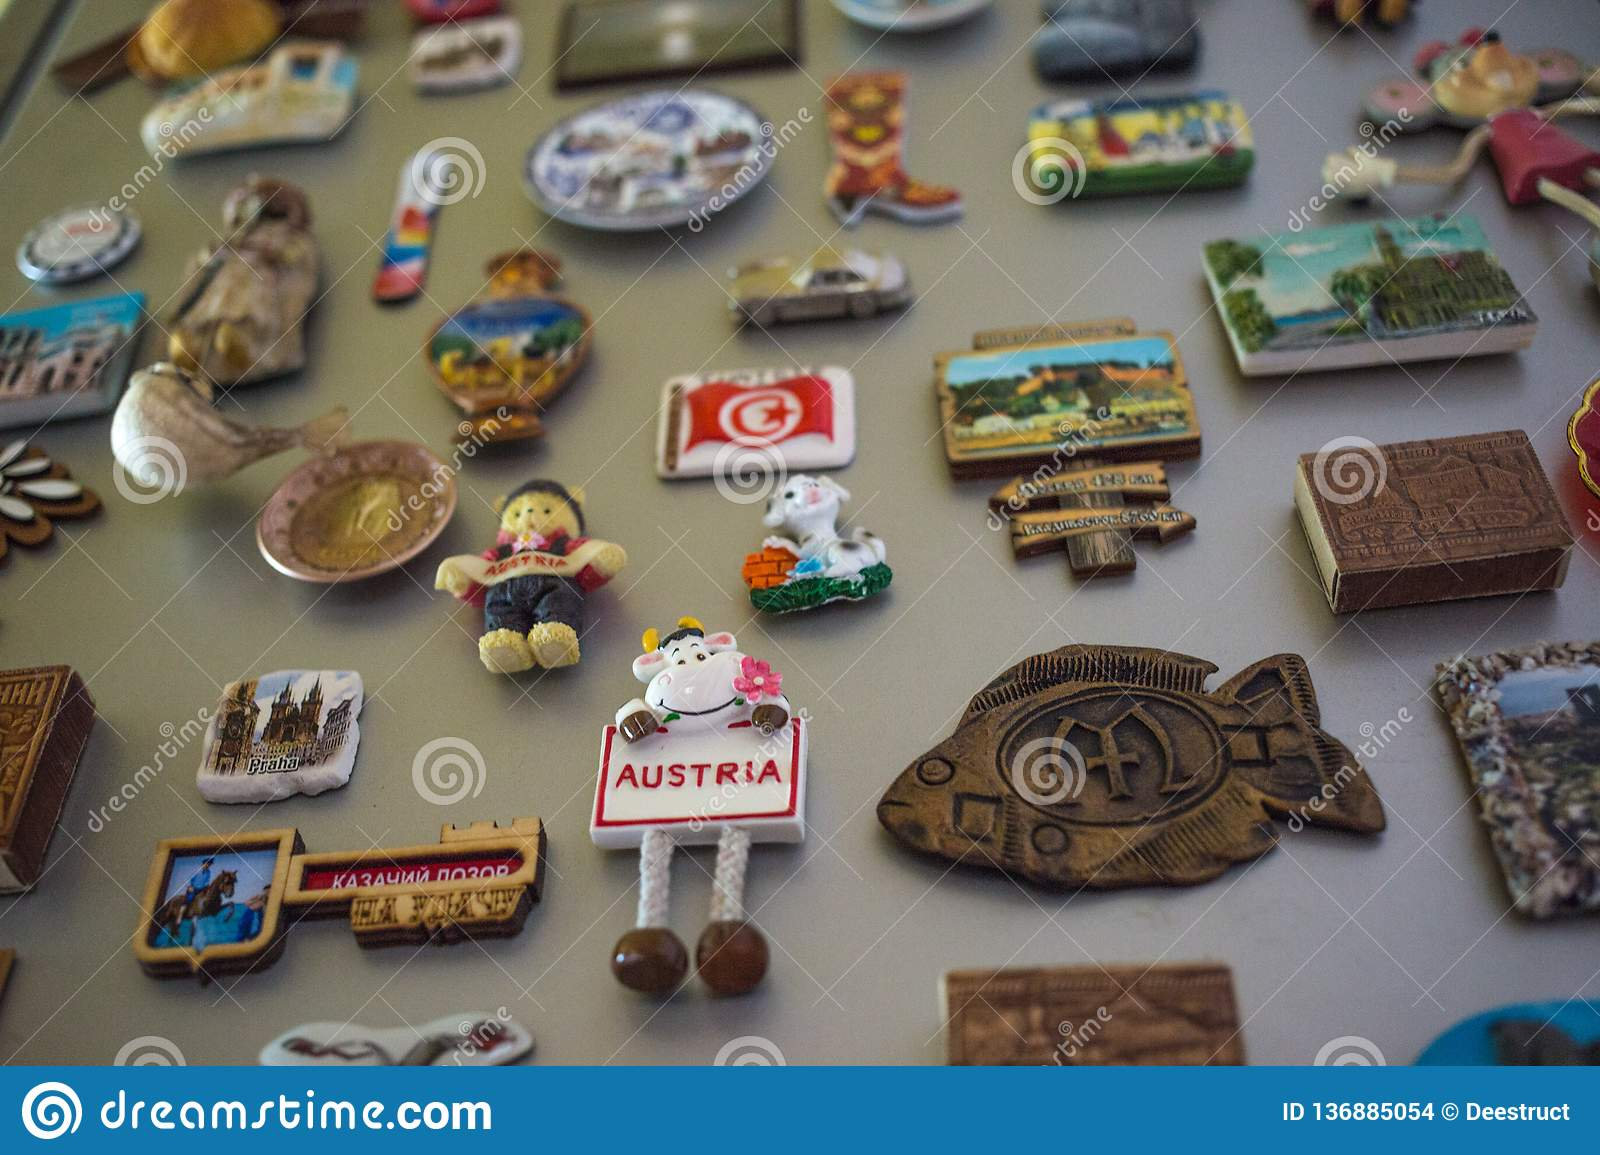 Moscow, Russia - 06 04 2018: souvenir magnets on the refrigerator door, the memory of travel